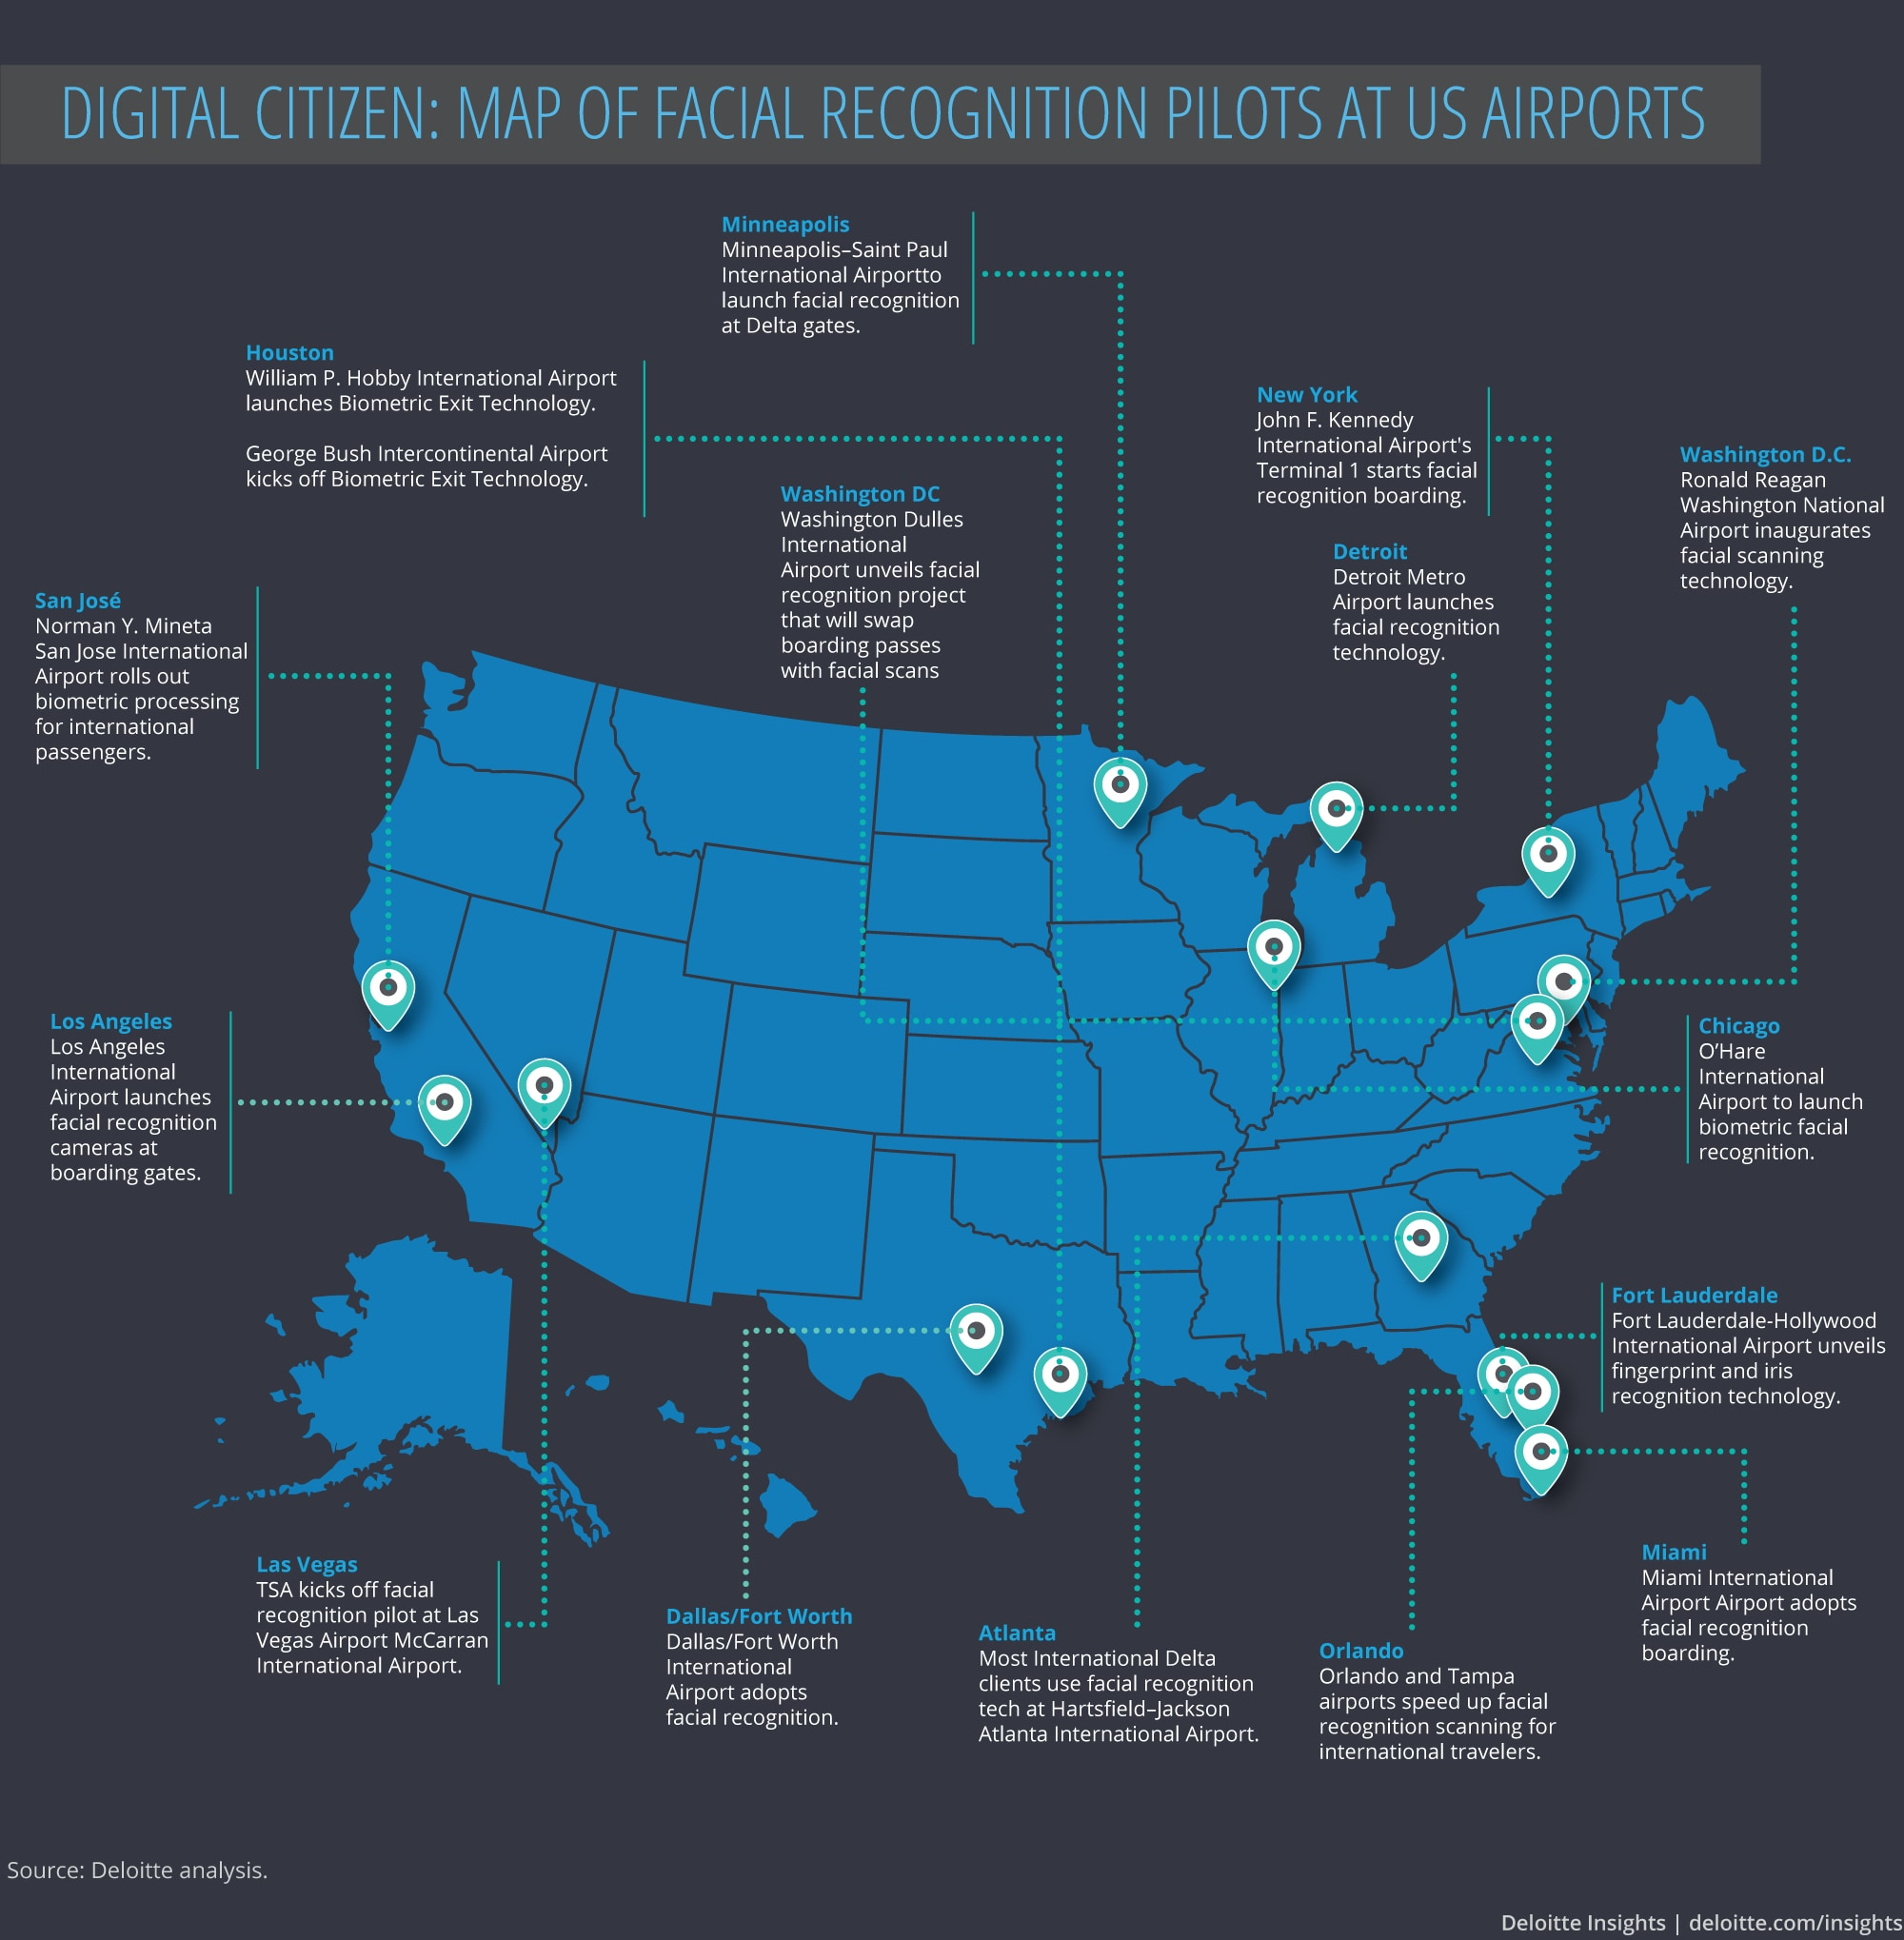 Map of facial recognition pilots at US airports